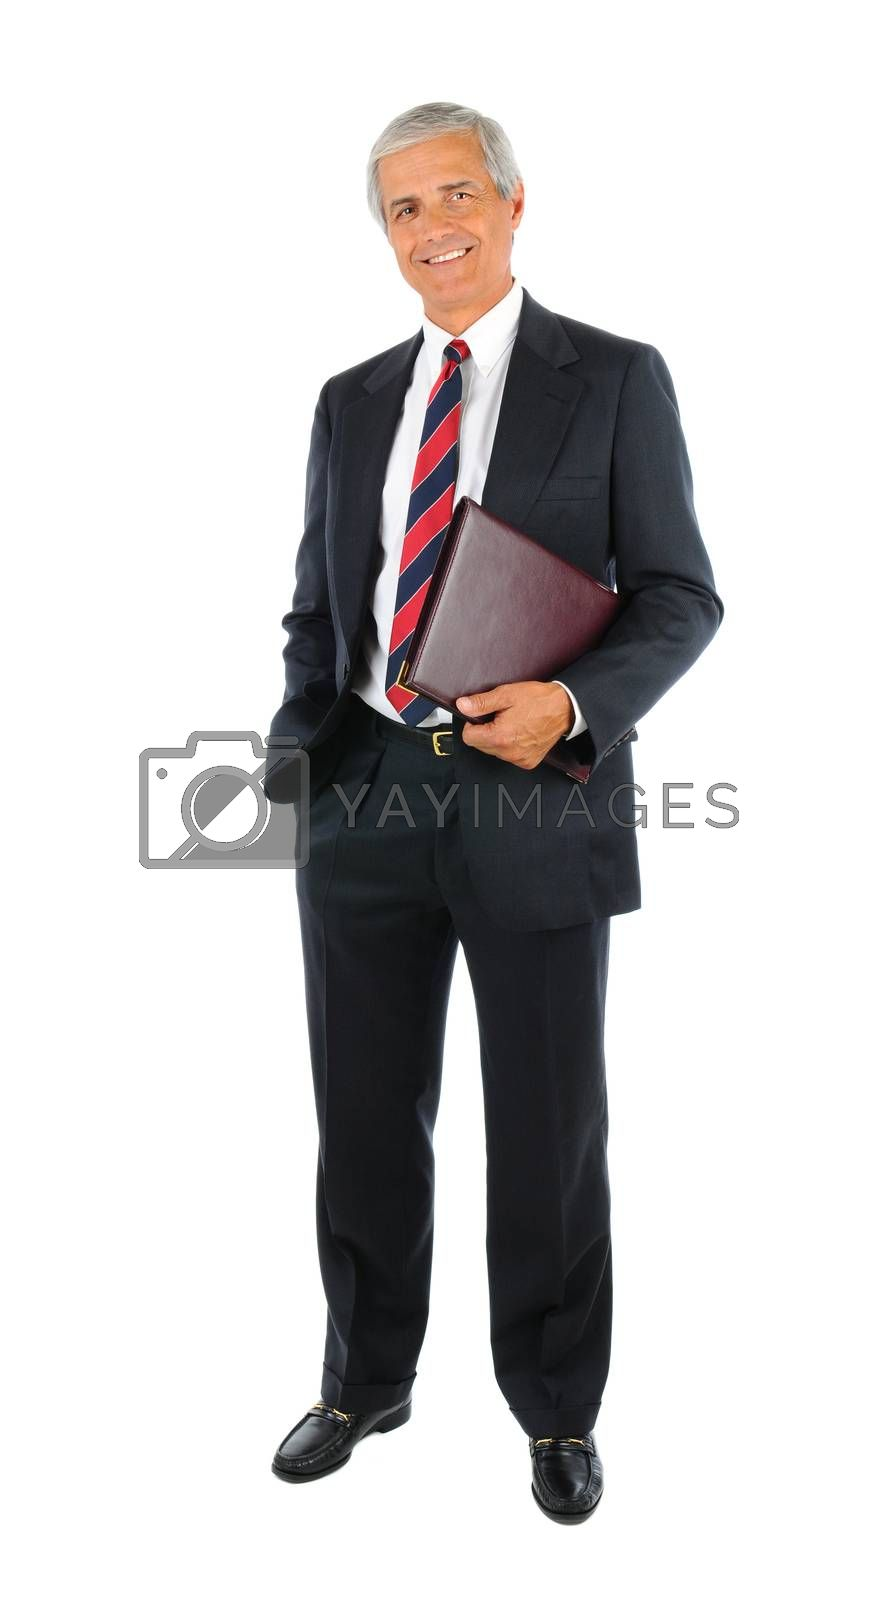 Smiling middle aged businessman in a suit and tie holding a leather portfolio. Full length over a white background.